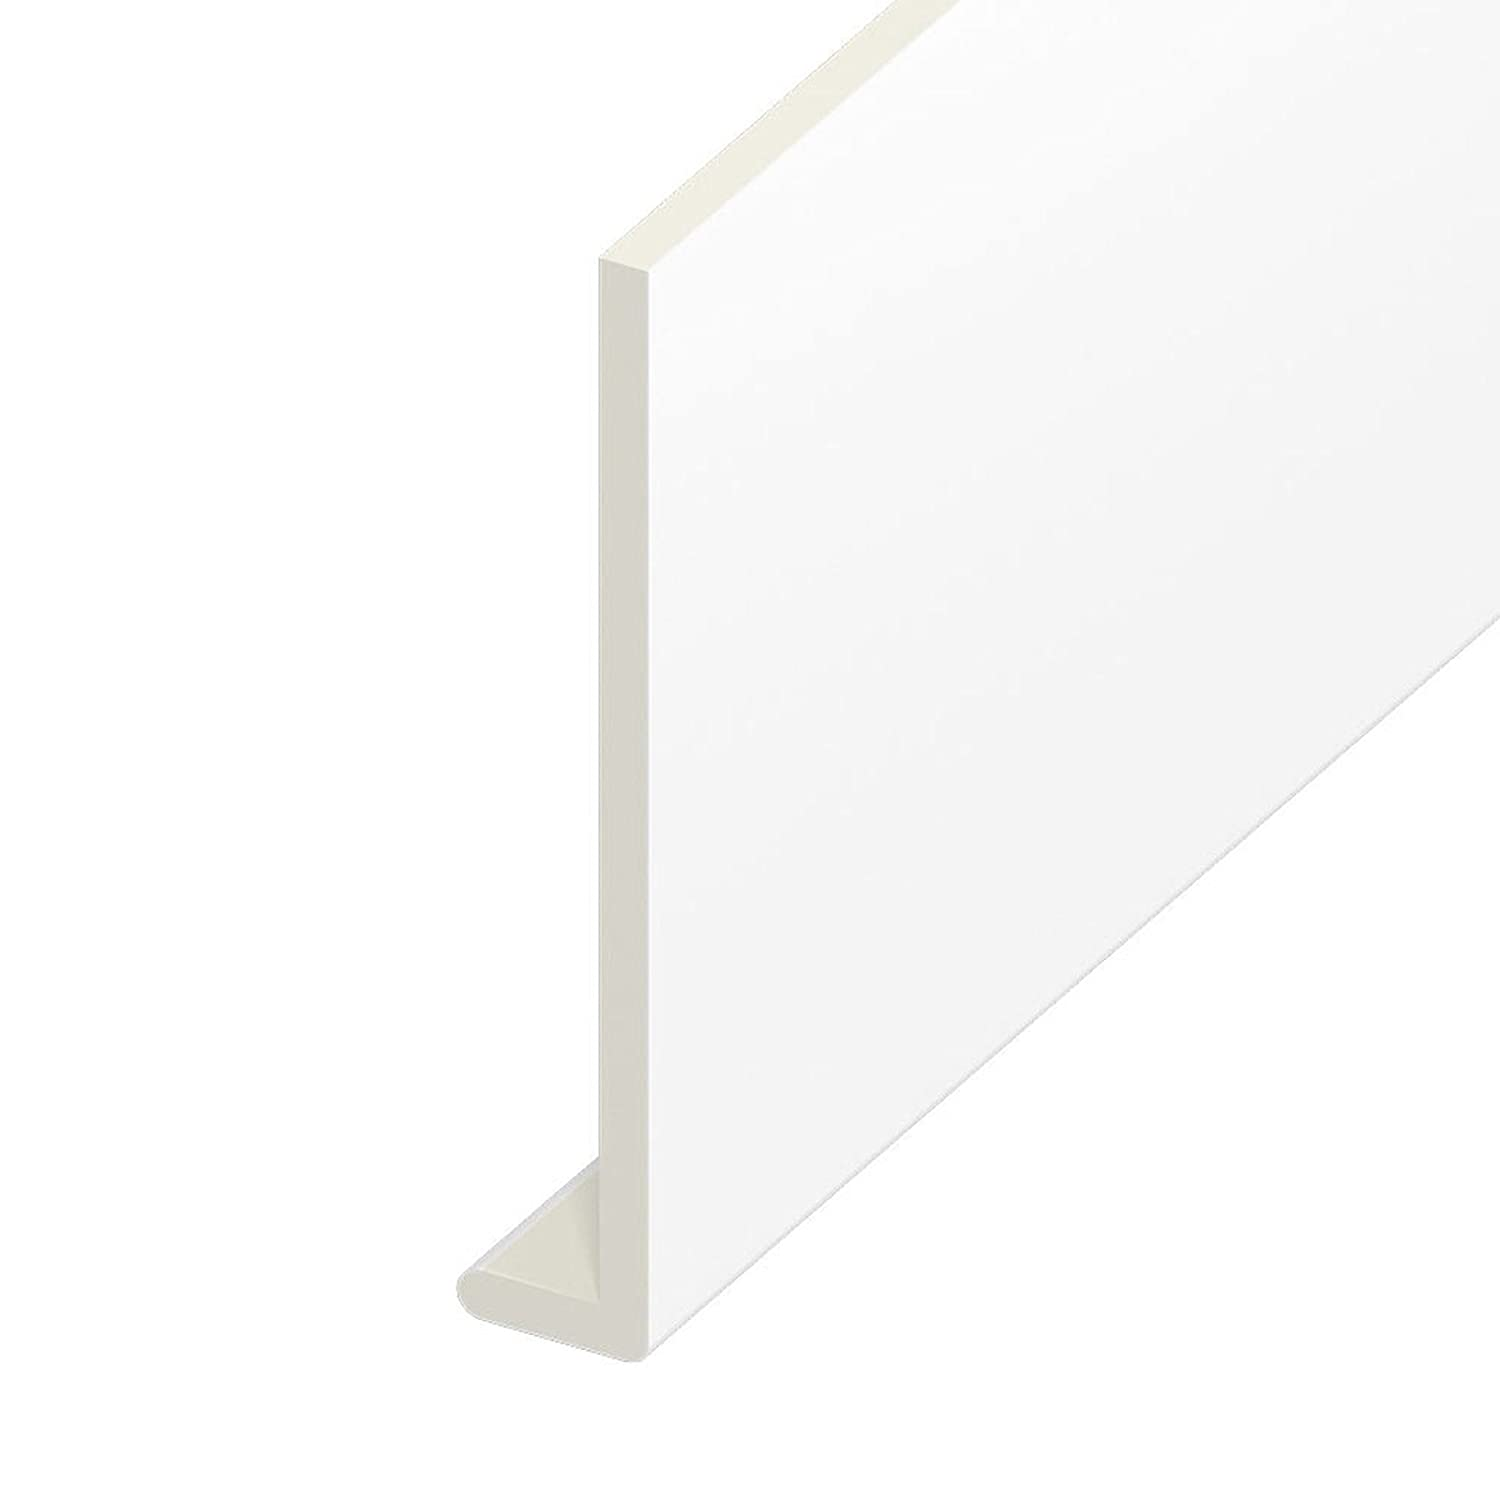 White, 225mm UPVC Fascia Capping Board 9mm Thick x 5m Length Plastic Window  Cill Cover